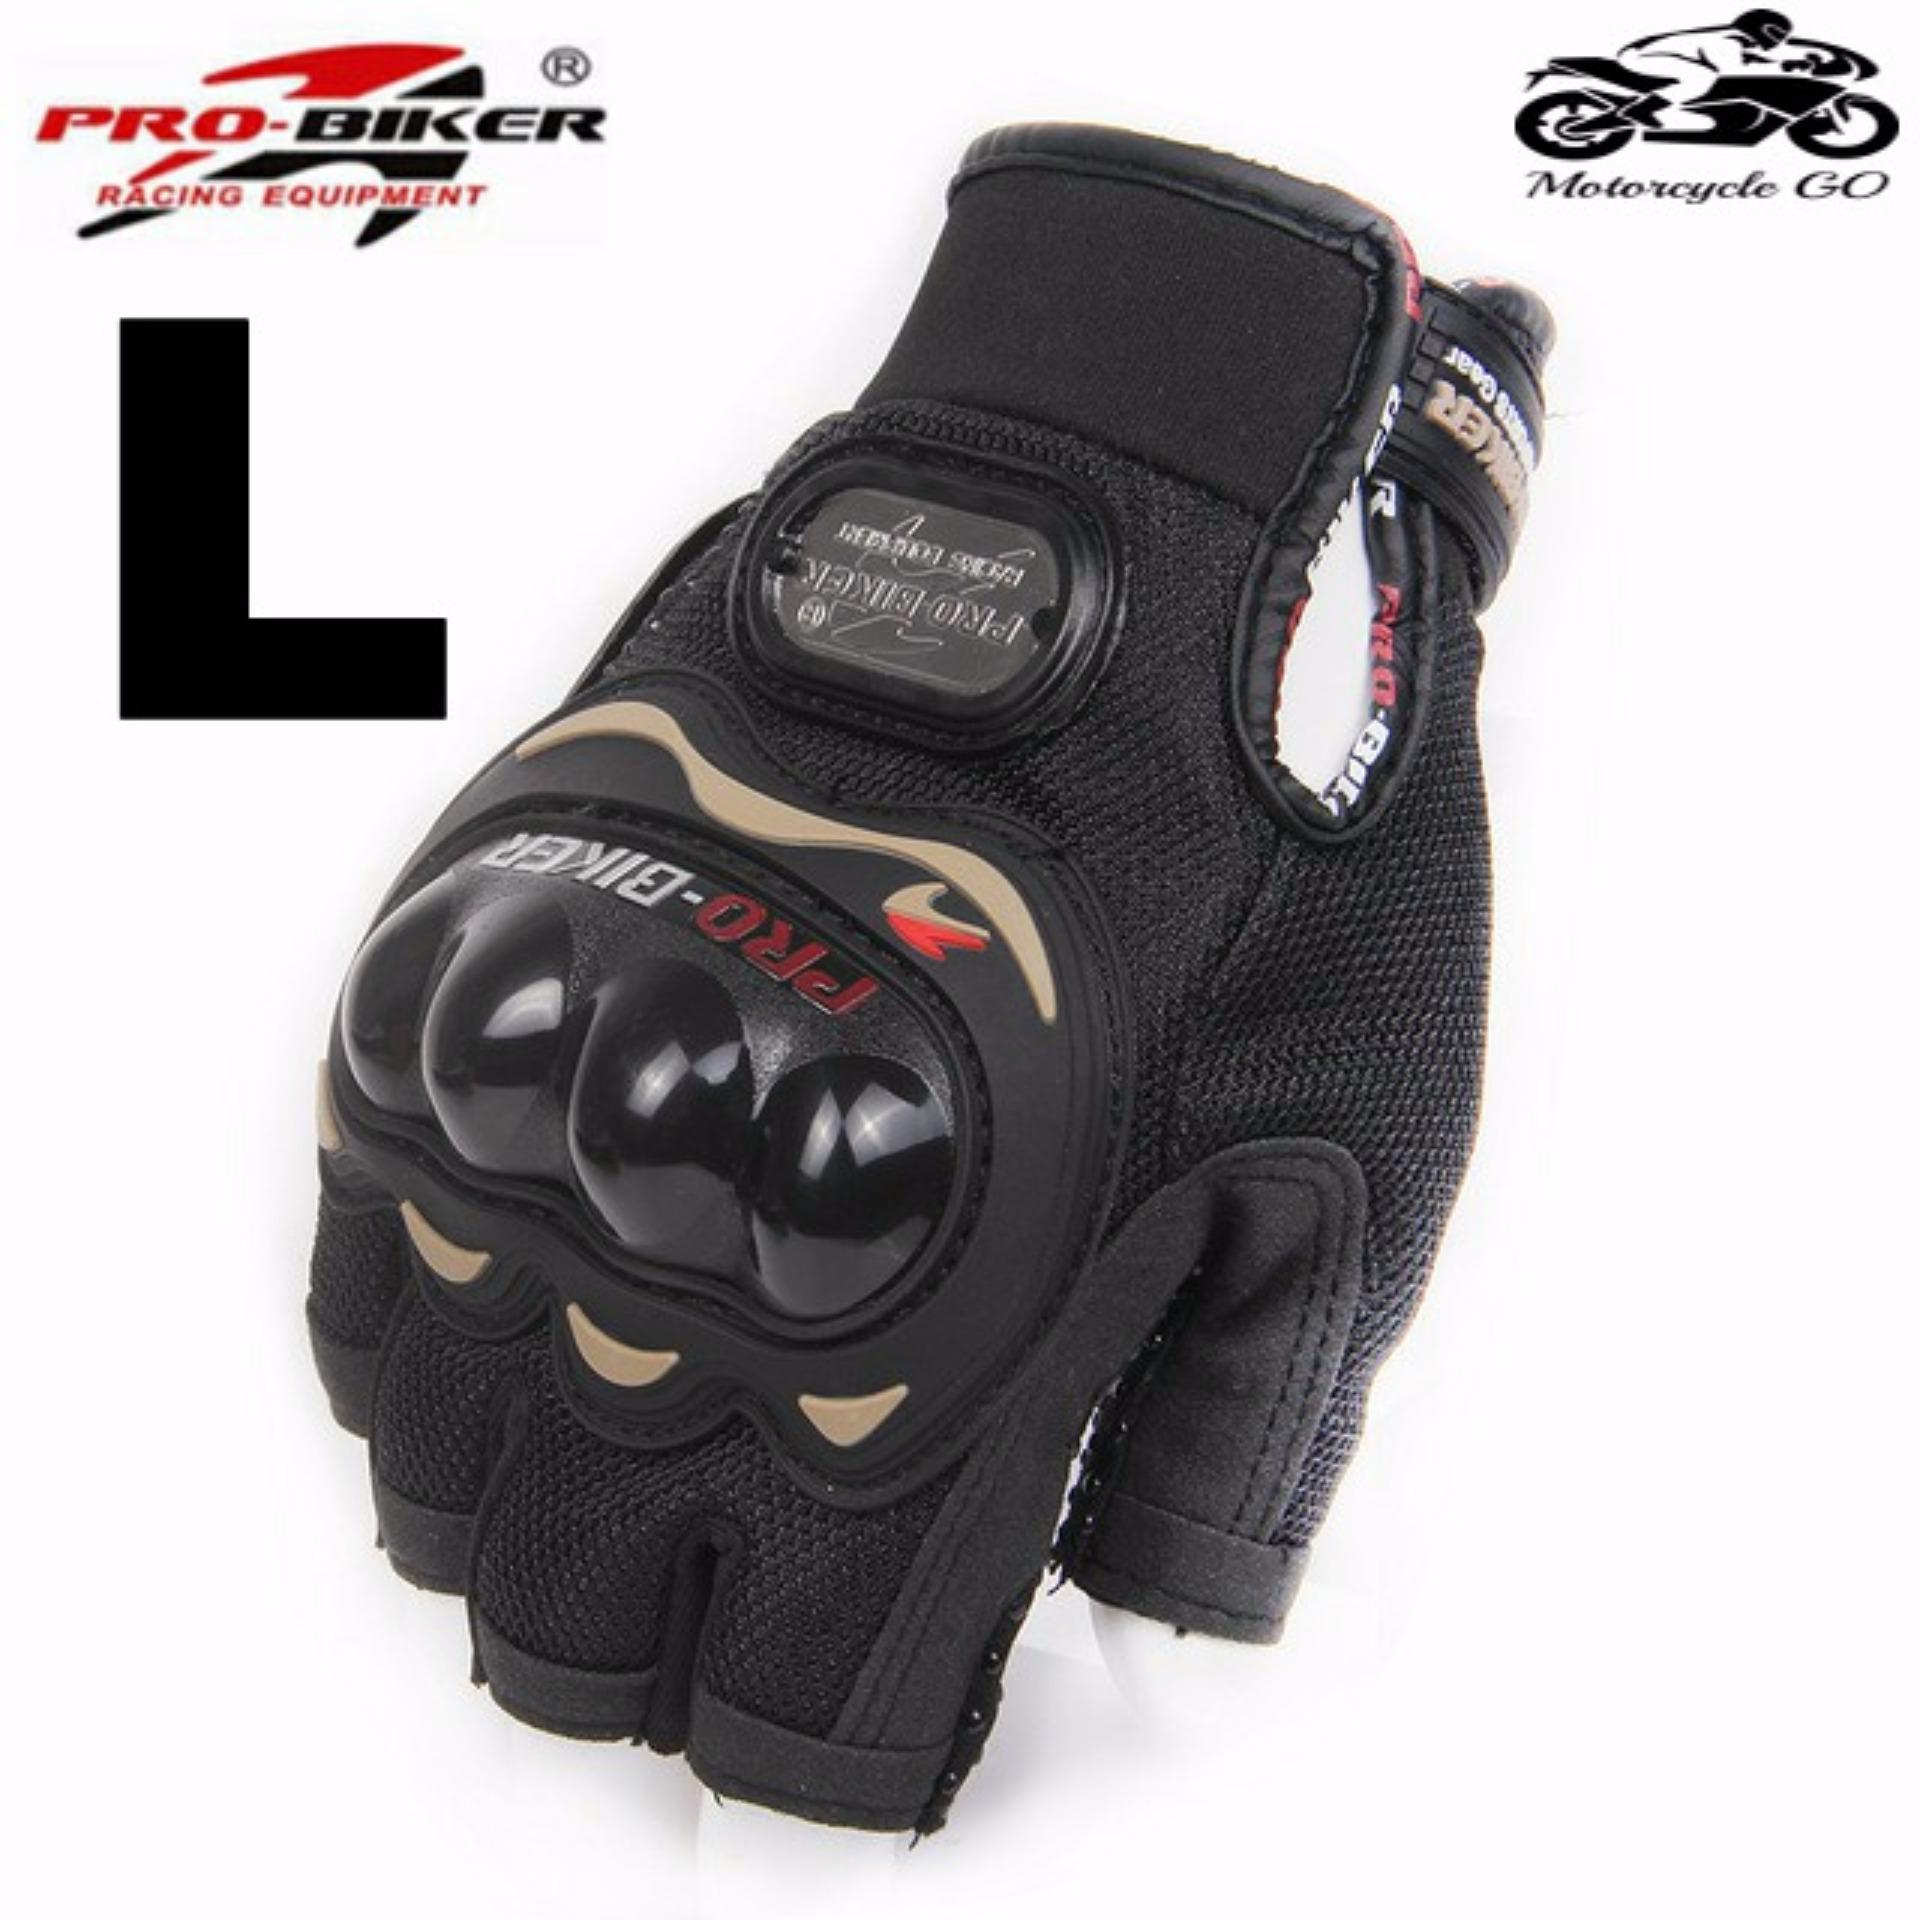 PRO BIKER Sports Racing Short Gloves Motorcycle Motorbike Fingerless Outdoor L Black